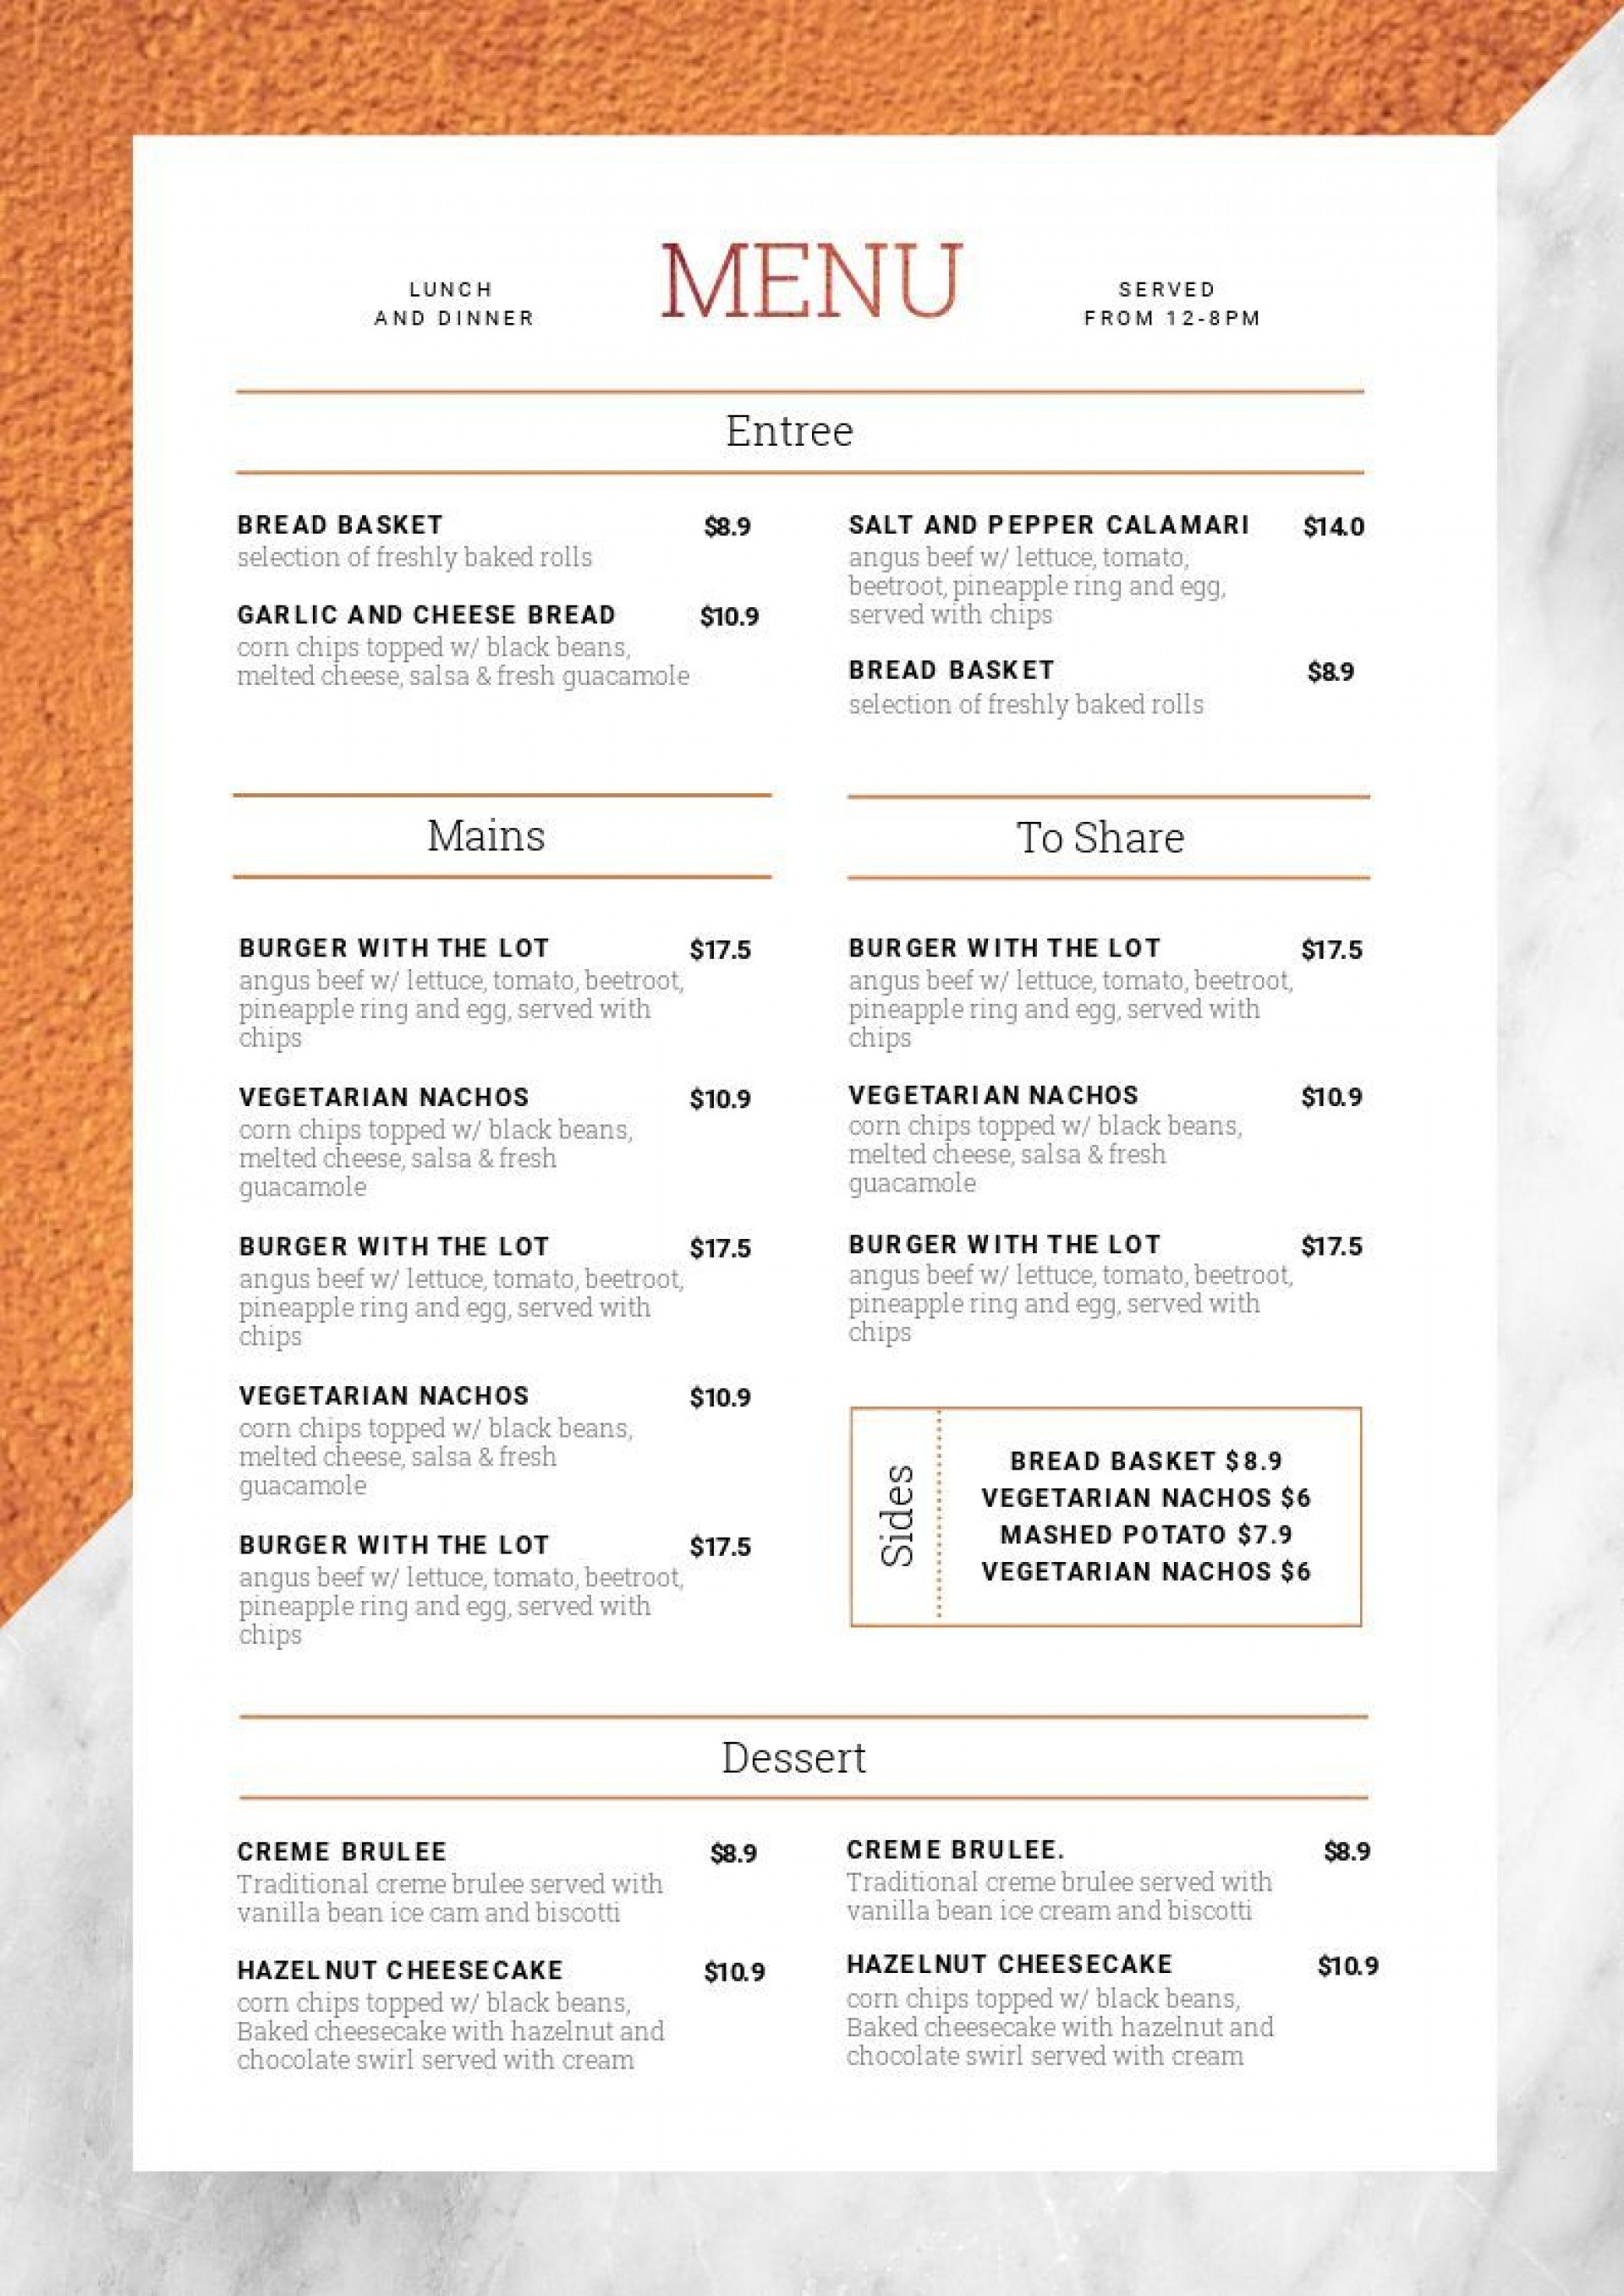 Menu Template Free Download With Price  Restaurant Psd Word Html1920